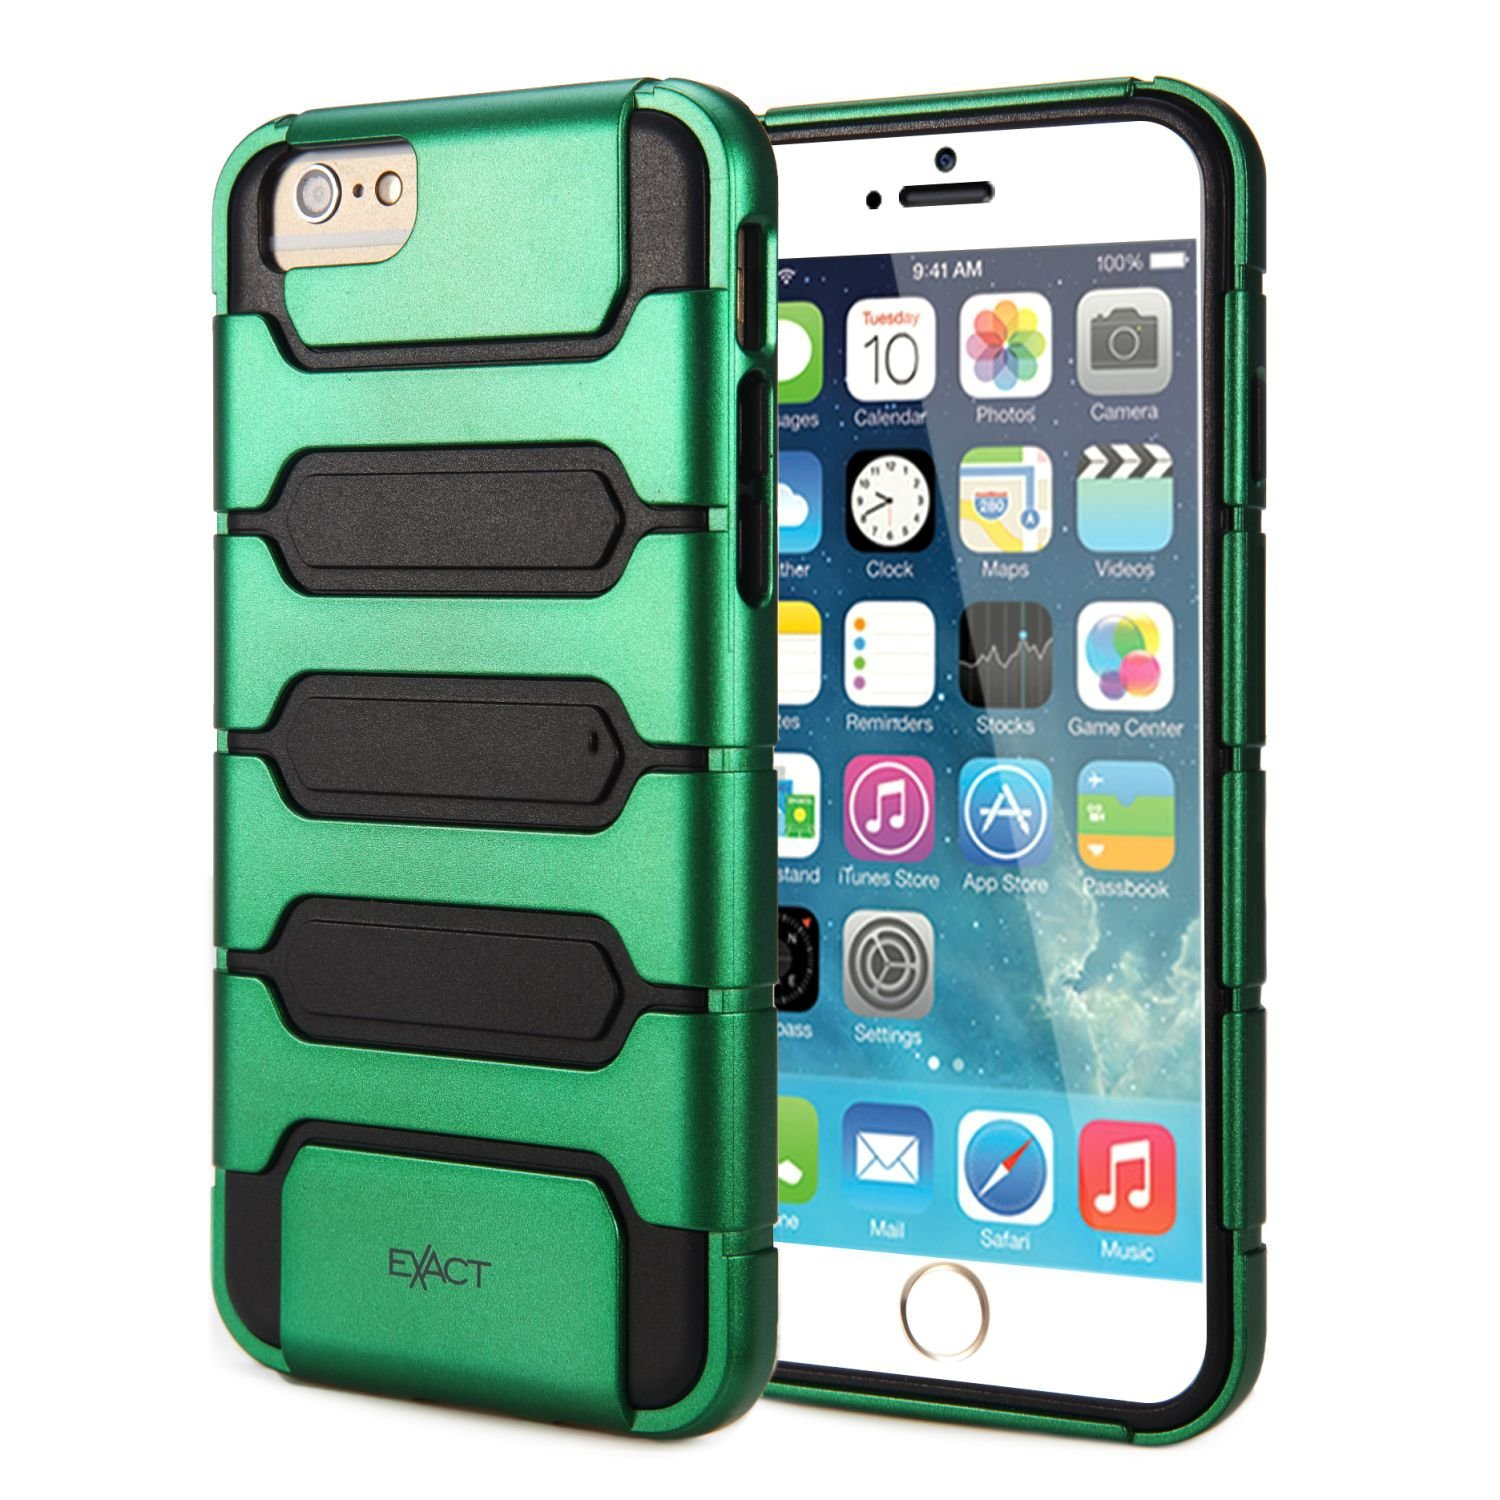 iPhone 6 Plus / iPhone 6S Plus Case - Exact [BUNKER Series] - Protective Hybrid Cover Case for Apple iPhone 6 Plus (2014)/iPhone 6S Plus (2015) Green/Black